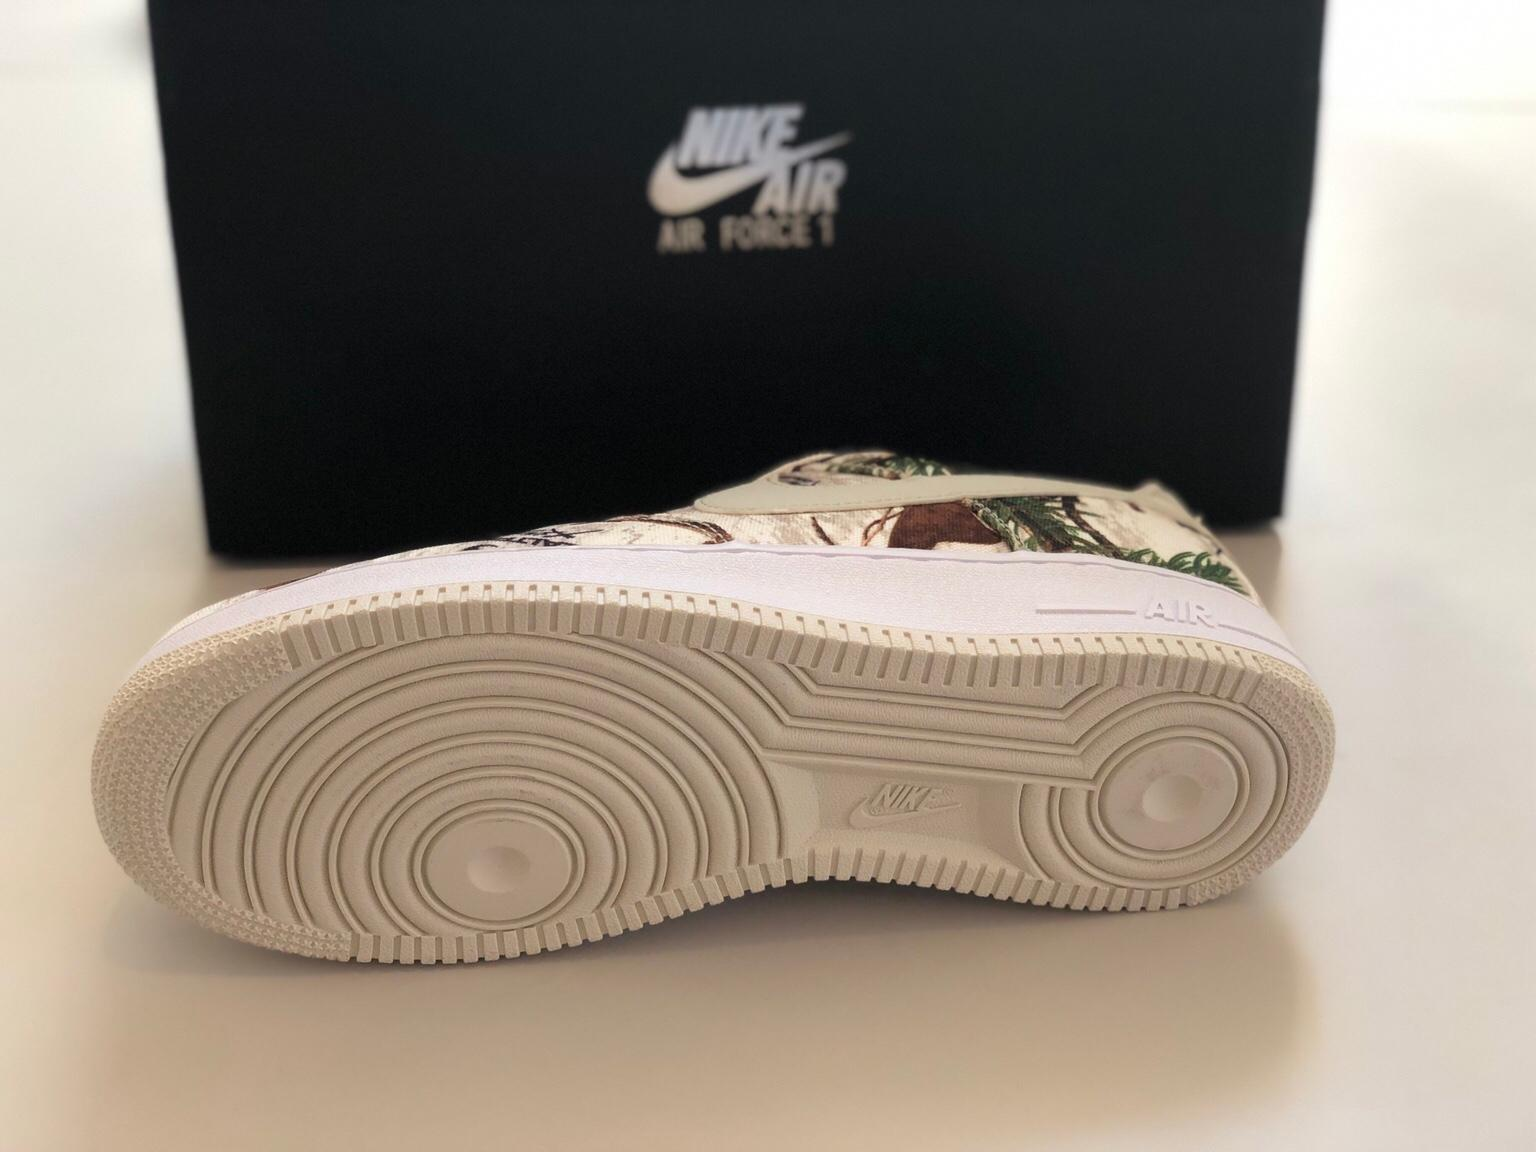 NIKE AIR FORCE 1 07 LV8 3, Größe 44 in 1230 KG Erlaa for